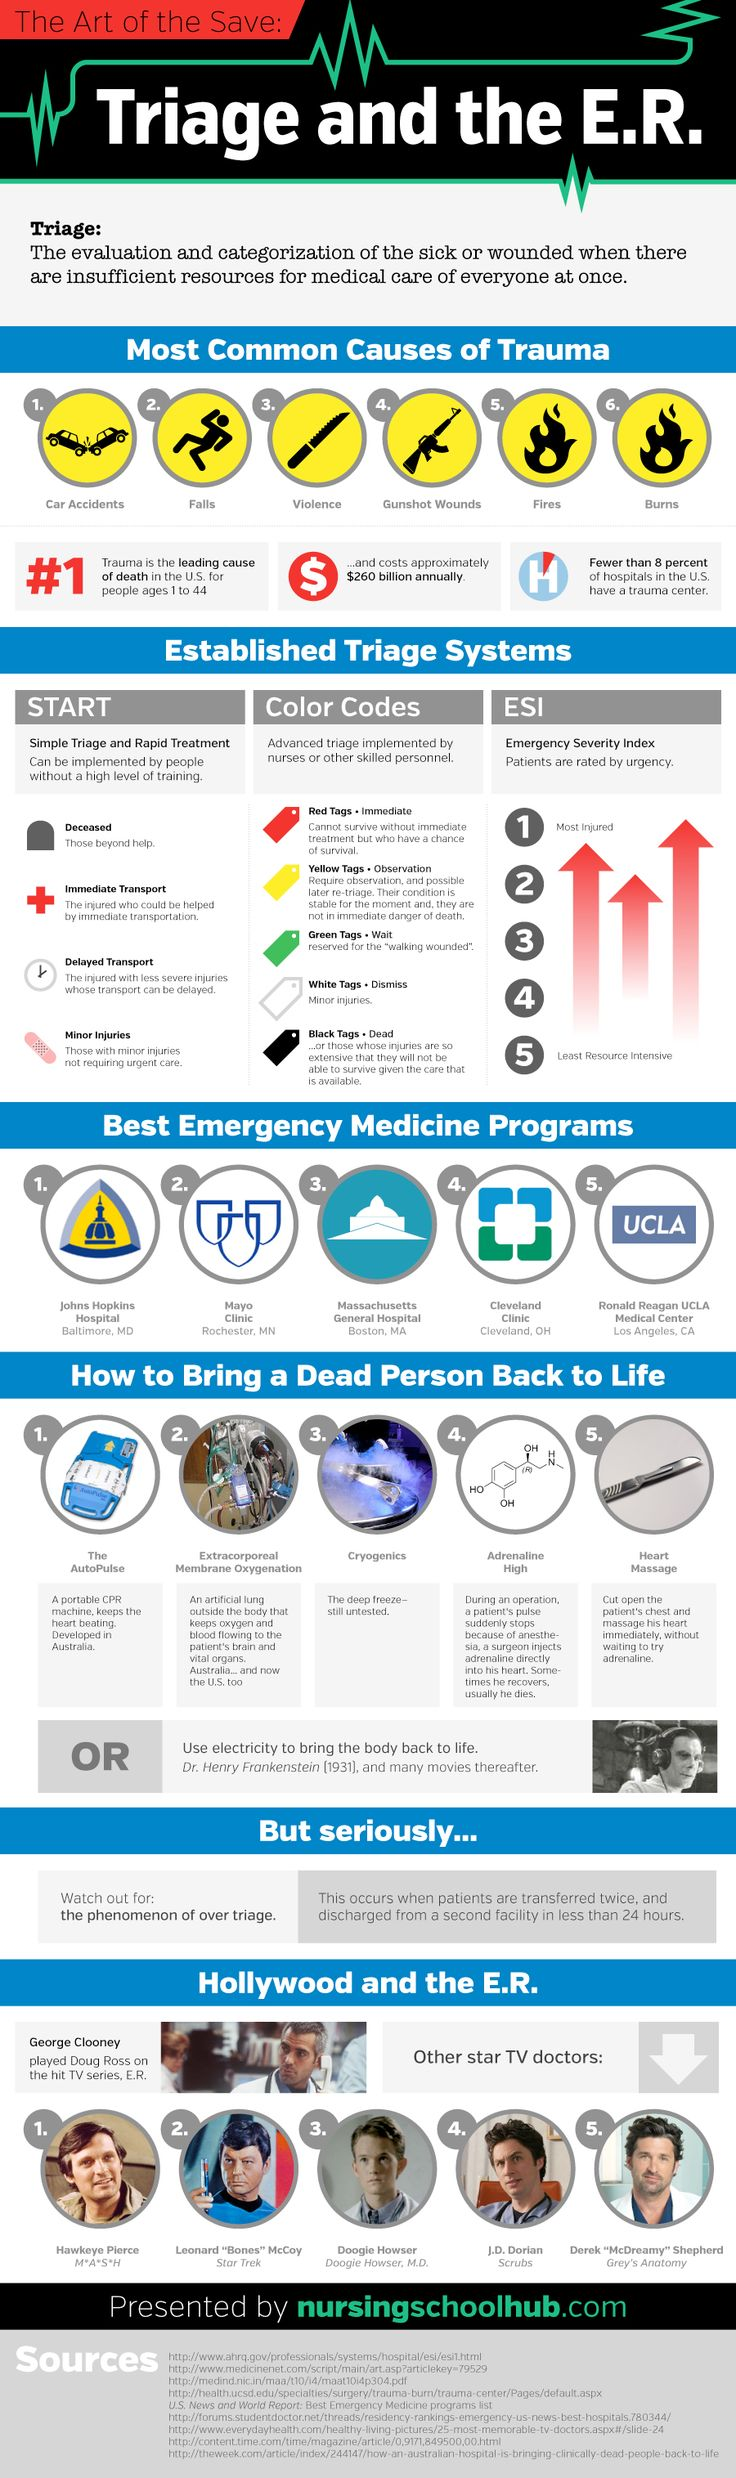 Understanting Triage #FirstAid - what-does-a-triage-nurse-do.jpg (900×3031)